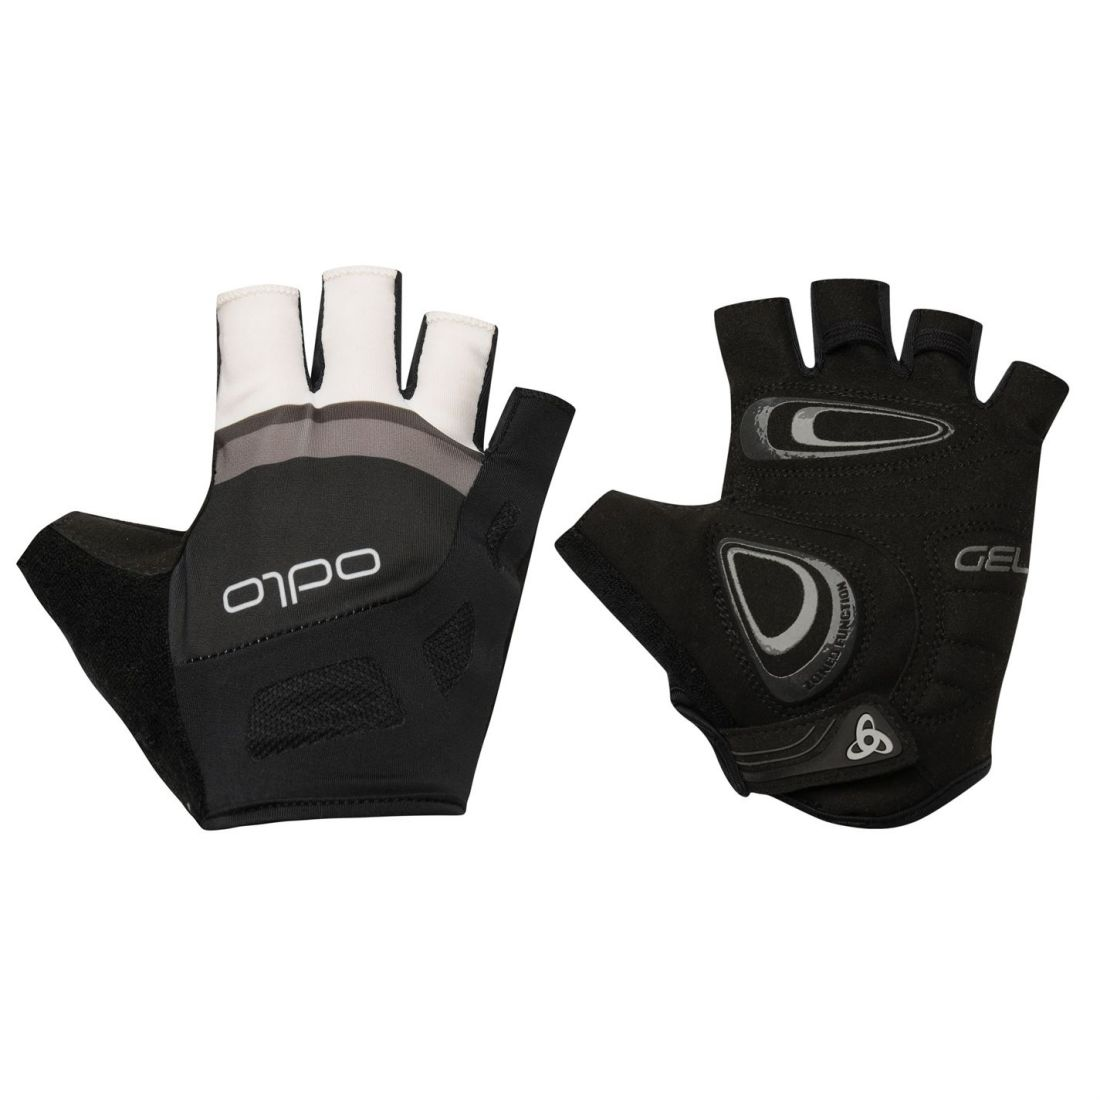 Odlo Mens Endurance Mittens Elastic Padded Gel Zones Cycling Bicycle Accessories